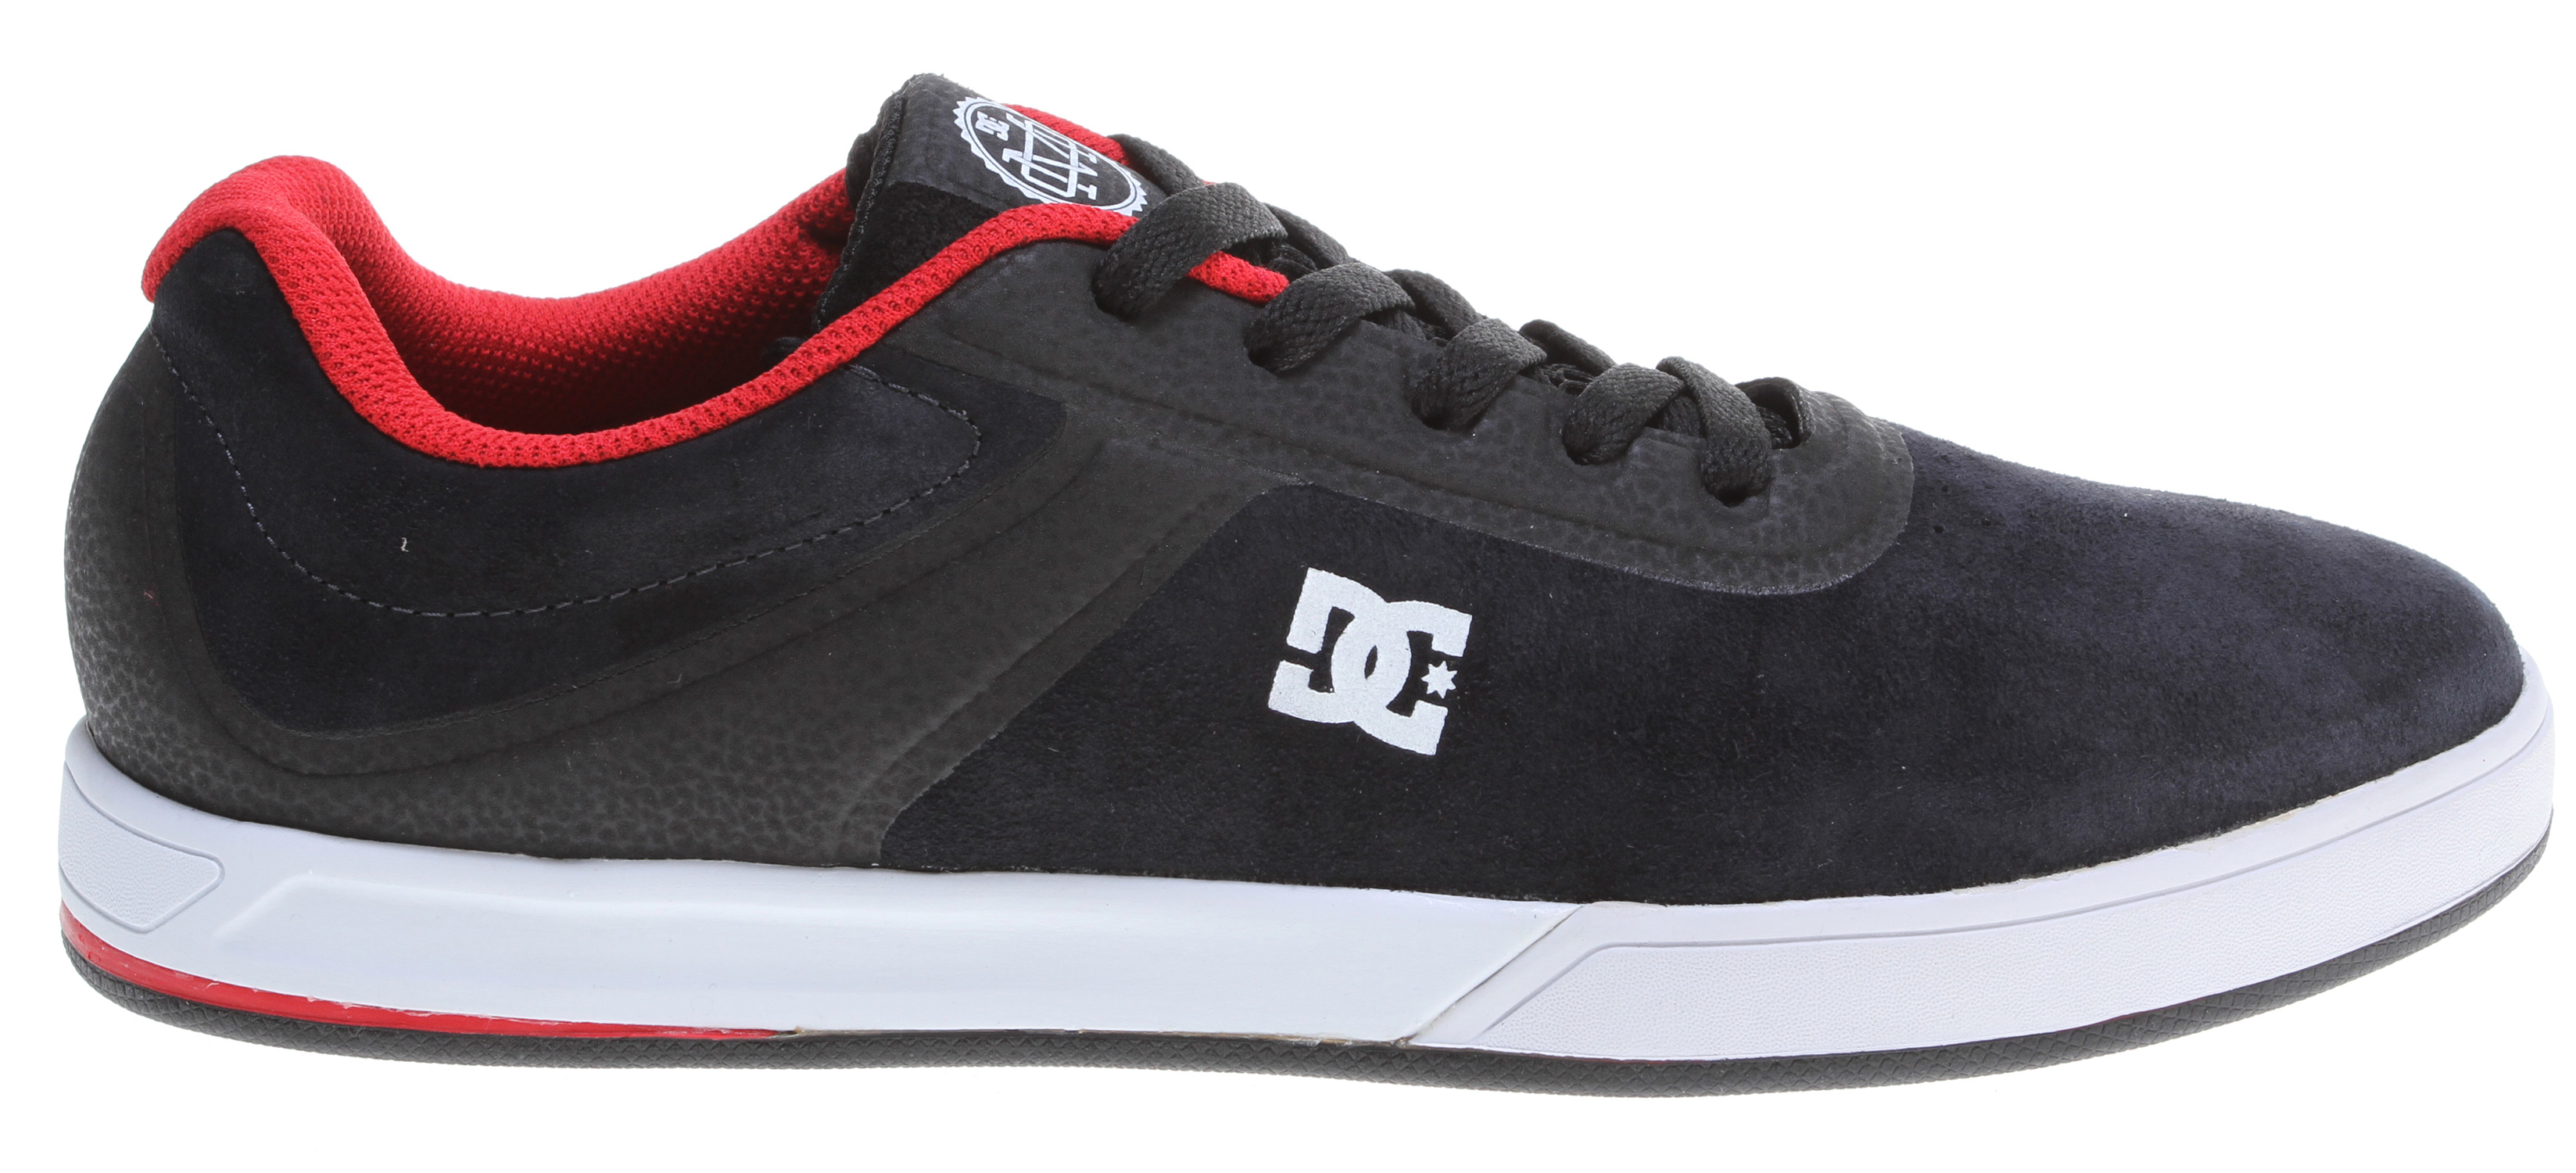 Skateboard Mike Mo Capaldi's first signature DC shoe model. It features a no-sew upper, TPU backed super suede upper, TPU reinforced eyebrow and heel counter, open mesh tongue, and vent holes for maximum breathability. A foam padded collar and rolled edge along with an internal mesh sleeve allow for comfort and superior fit. Also comes with an ortholite sockliner, unilite midsole and constructed using cupsole technology. Imported. - $54.95